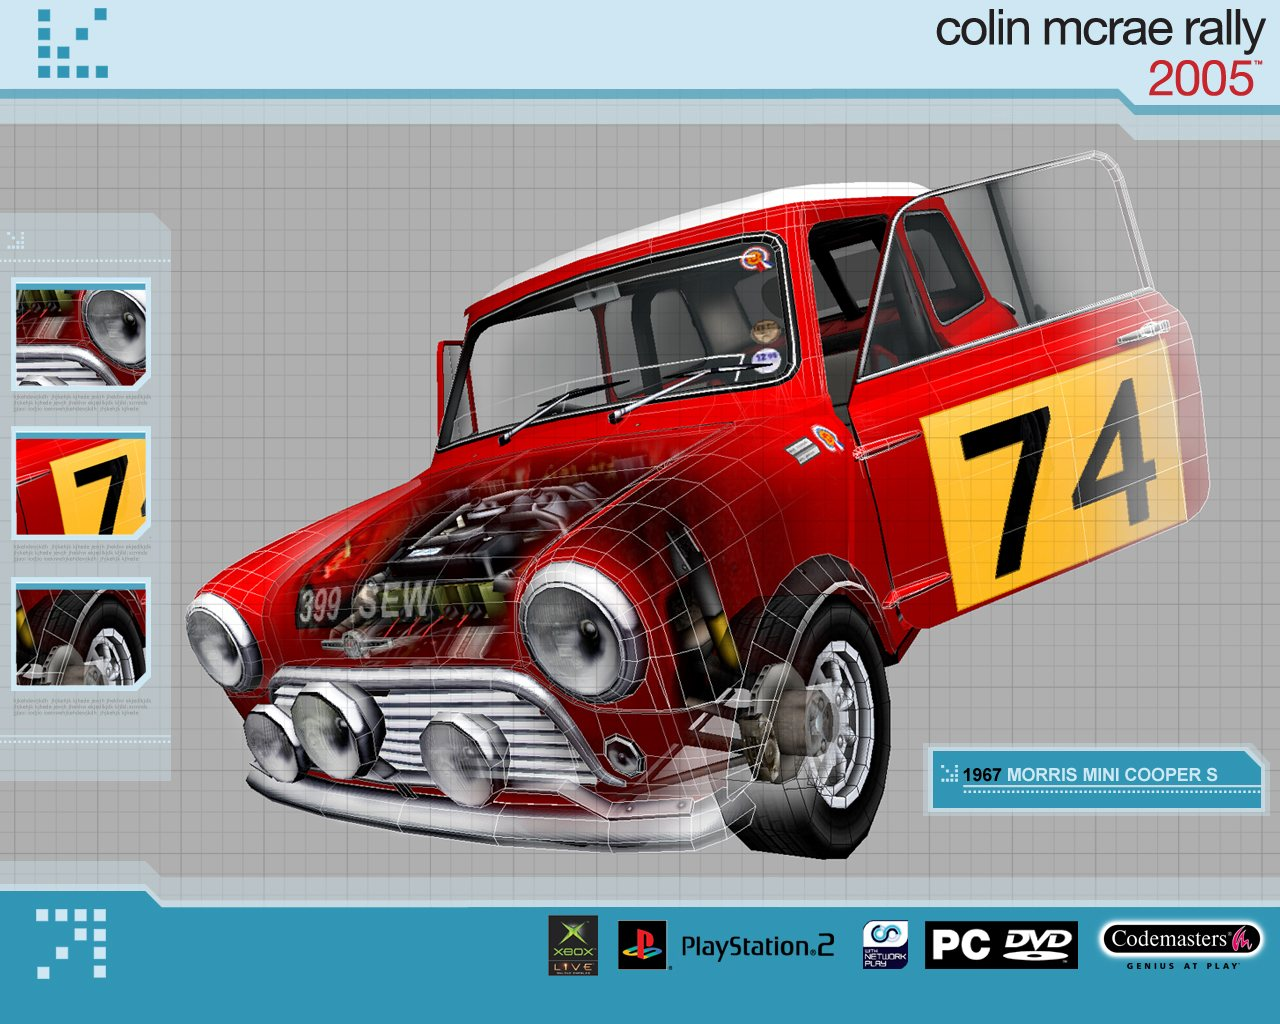 Morris Mini Cooper S - Colin McRae Rally 2005 | 1280x1024 Wallpaper